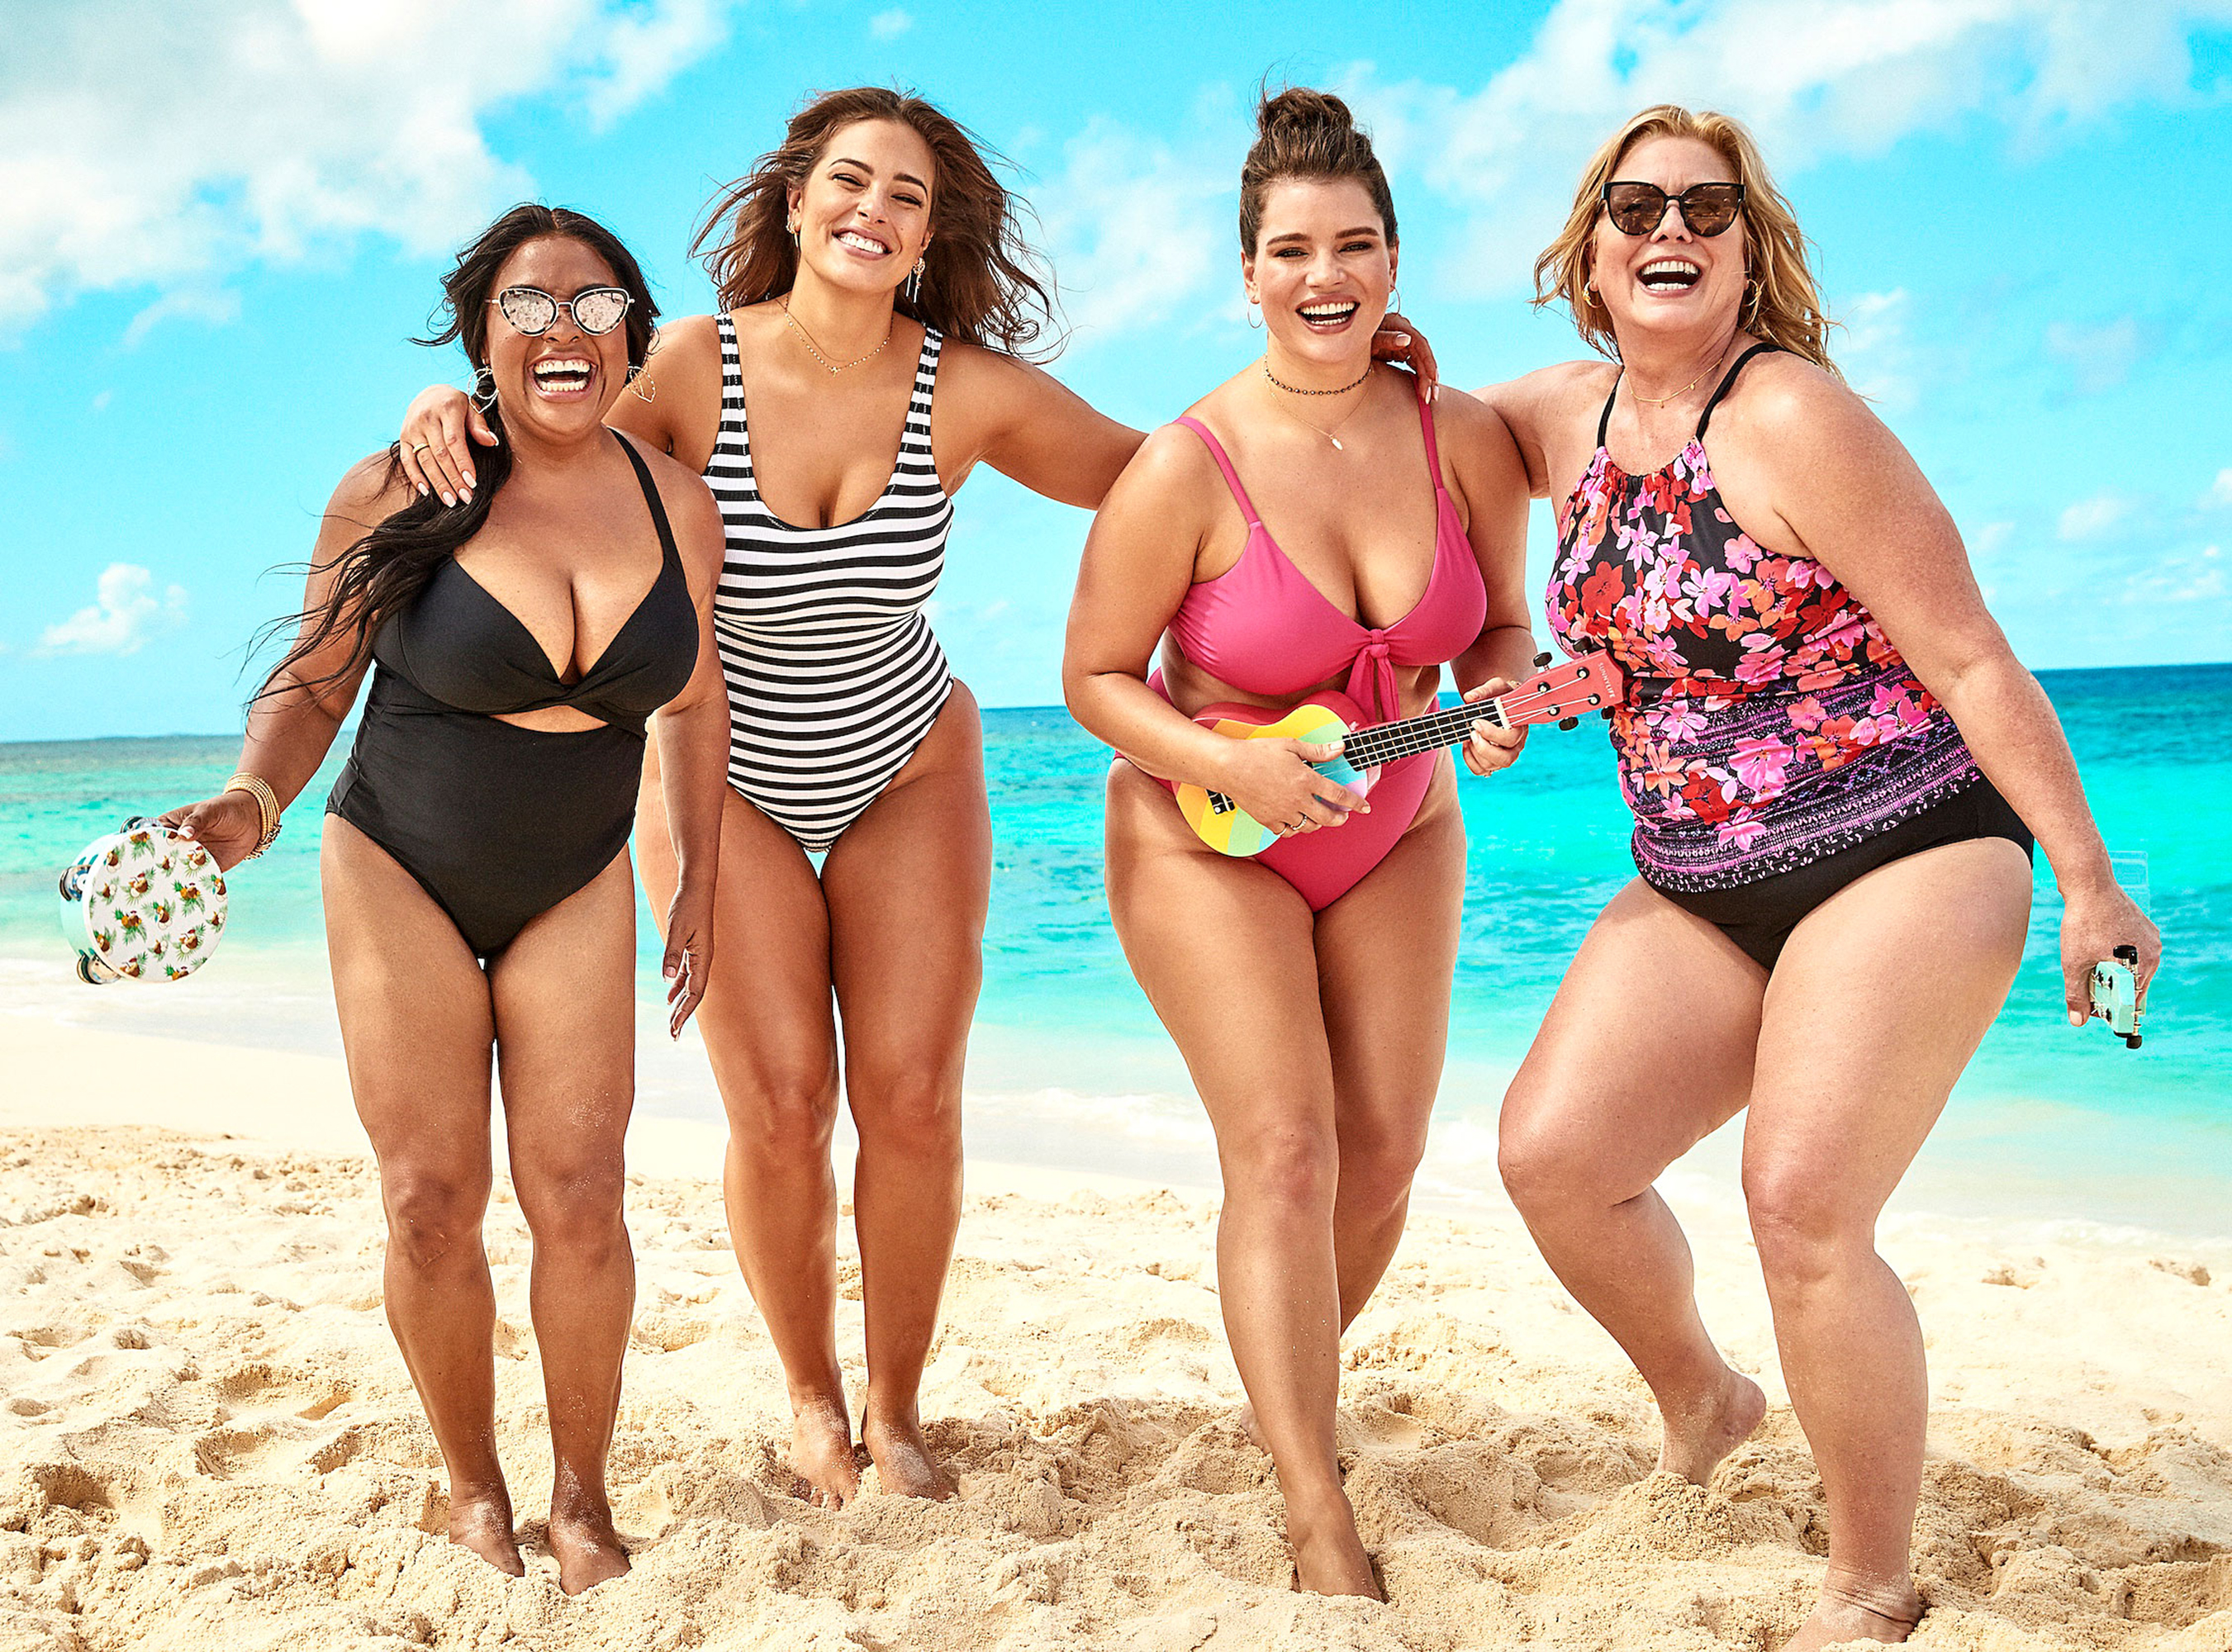 Ashley Graham Sherri Shepherd Lead Body-Positive Swim Campaign - Ashley Graham is no stranger to showing off her curves in swimsuits. But in a new collaborative, co-ed campaign called Every.